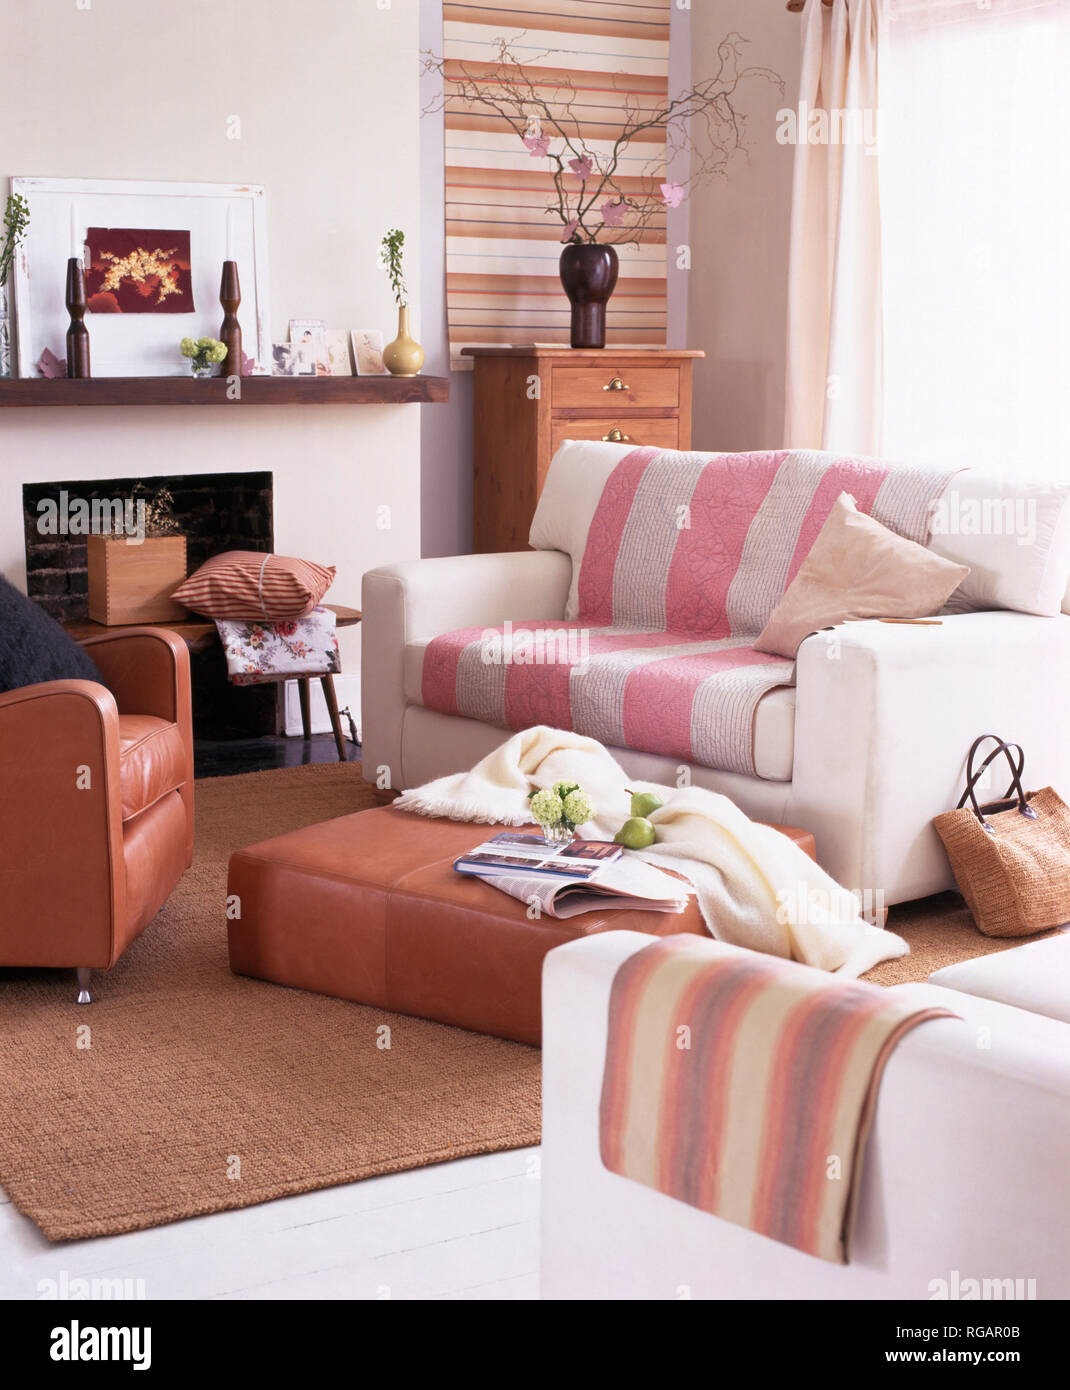 Striped Throws On White Sofas In Modern Living Room Stock Photo